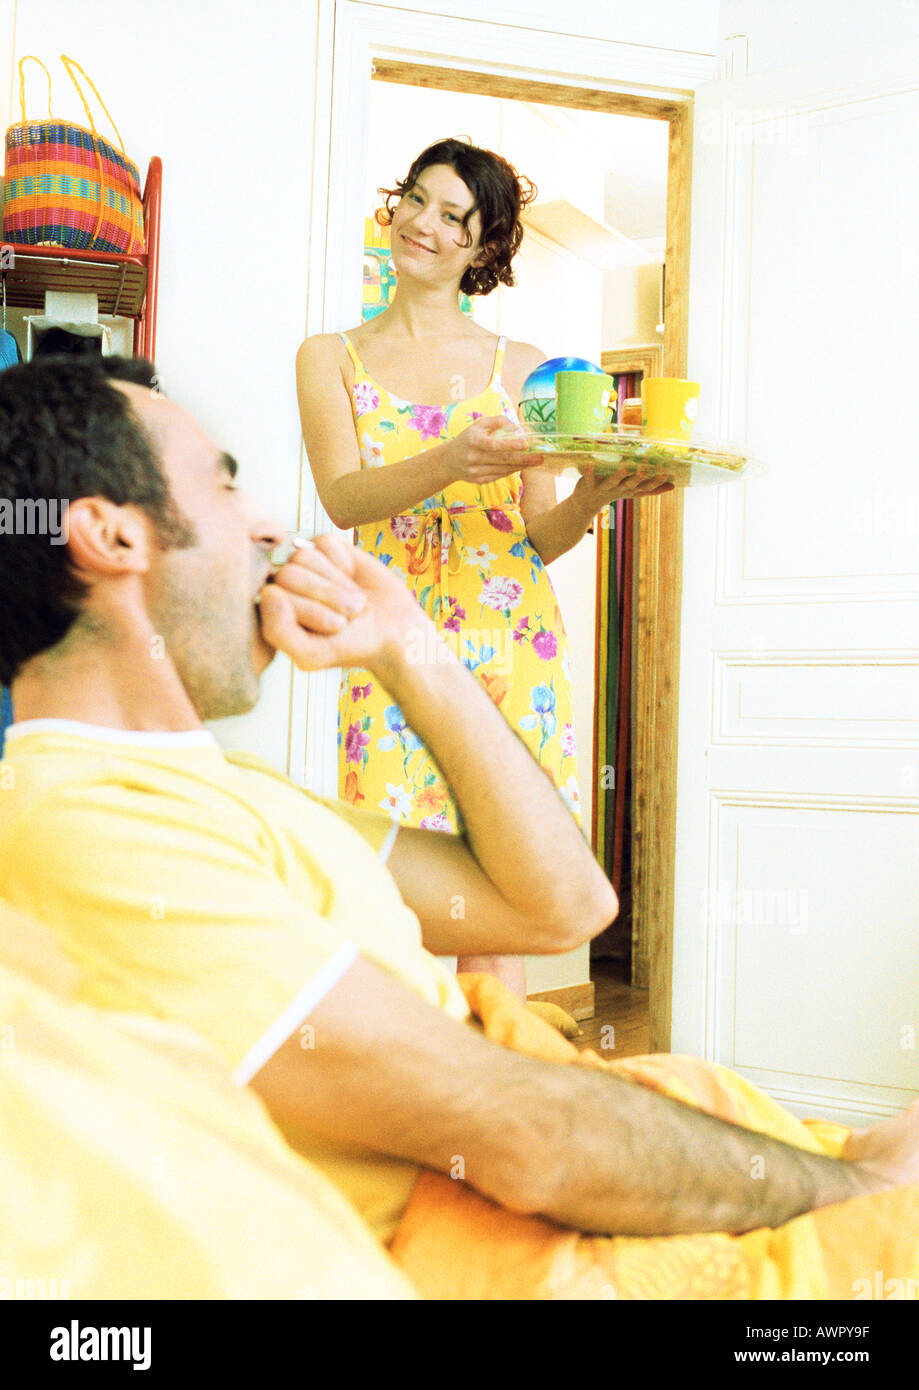 Man in bed yawning, woman carrying breakfast tray. - Stock Image